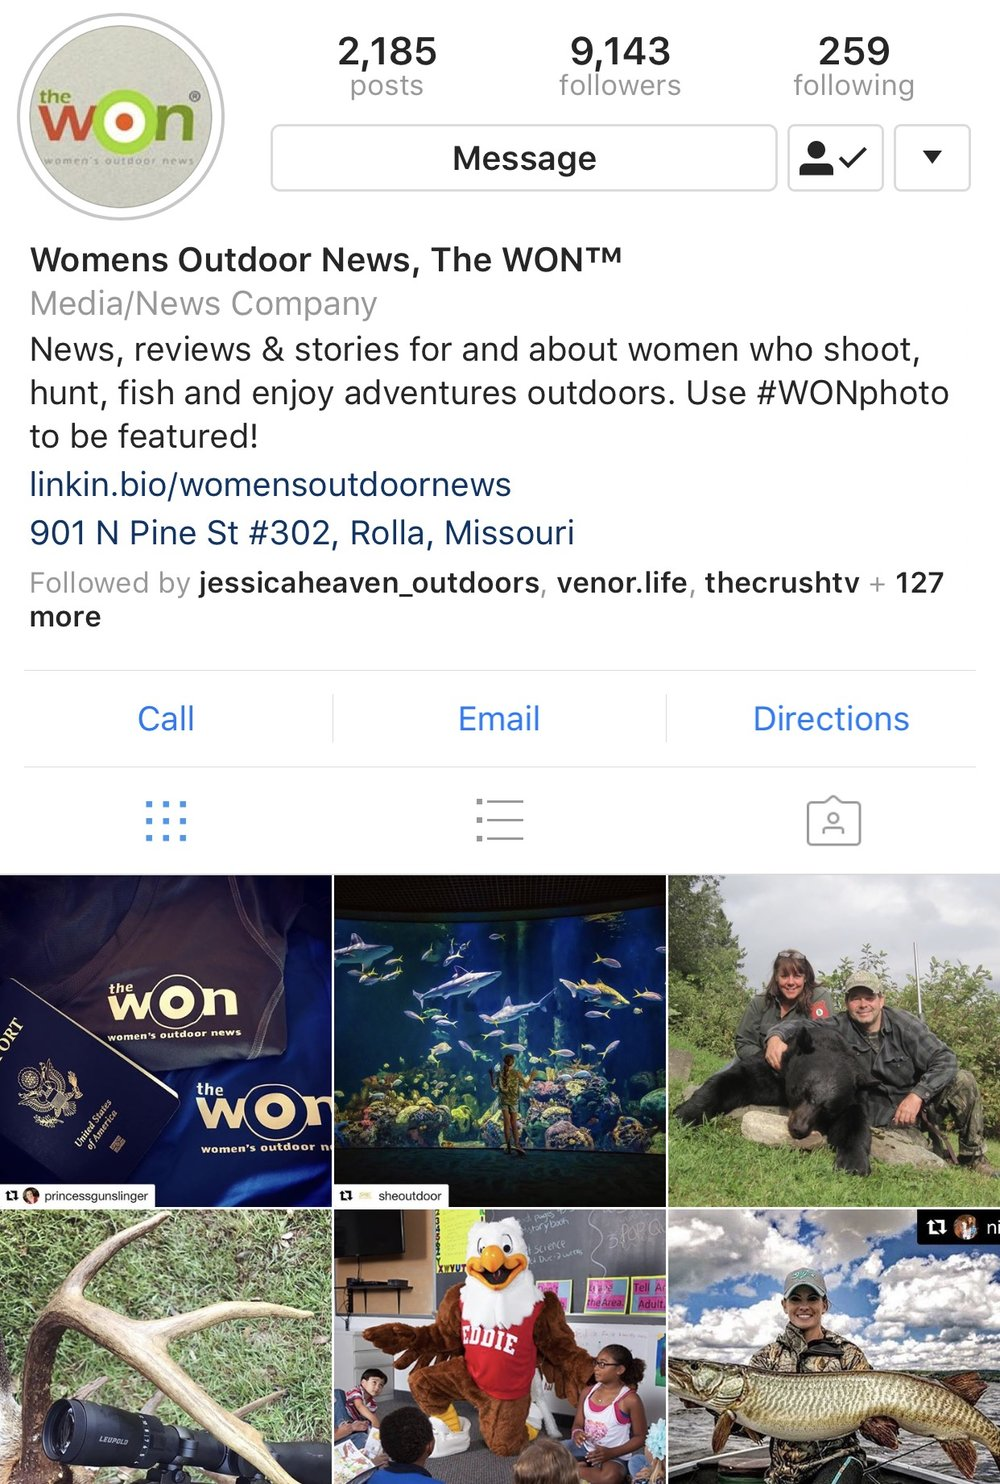 - The Women's Outdoor News, aka The WON,  features news, reviews and stories about women who are shooting, hunting, fishing and actively engaging in outdoor adventure. With a band of columnists and reviewers, photographers and female correspondents, The WON engages its readers through a blog format and we invite you to talk to us. Network with us. Let us know what you're doing outside and what you'd like to learn about.